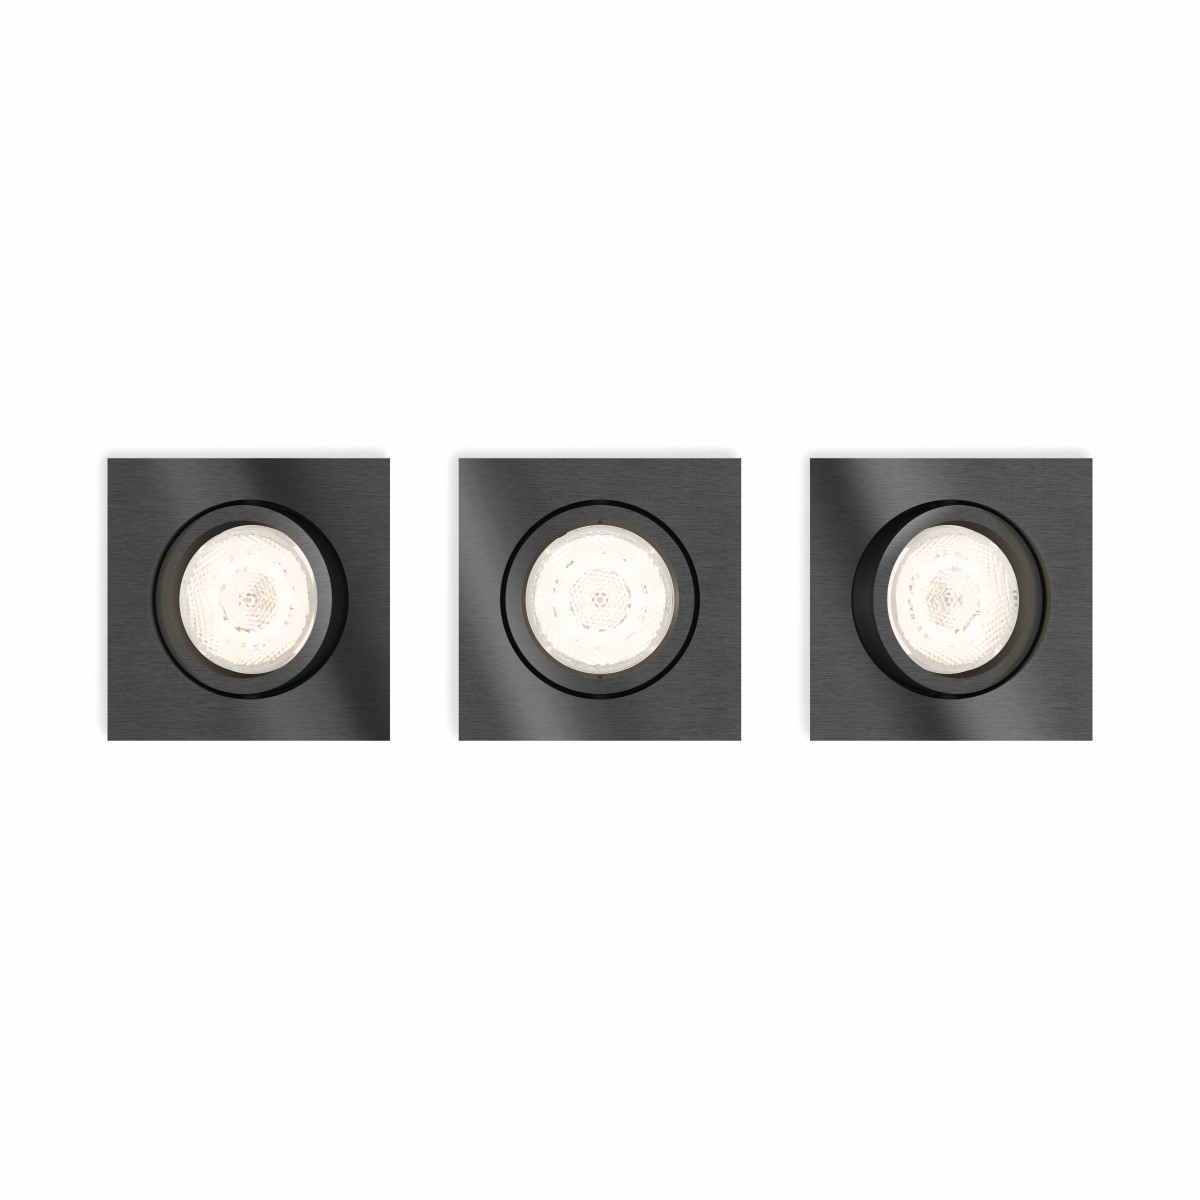 Philips Lighting Shellbark 5039399P0 LED-inbouwlamp Set van 3 13.5 W Warm-wit Antraciet